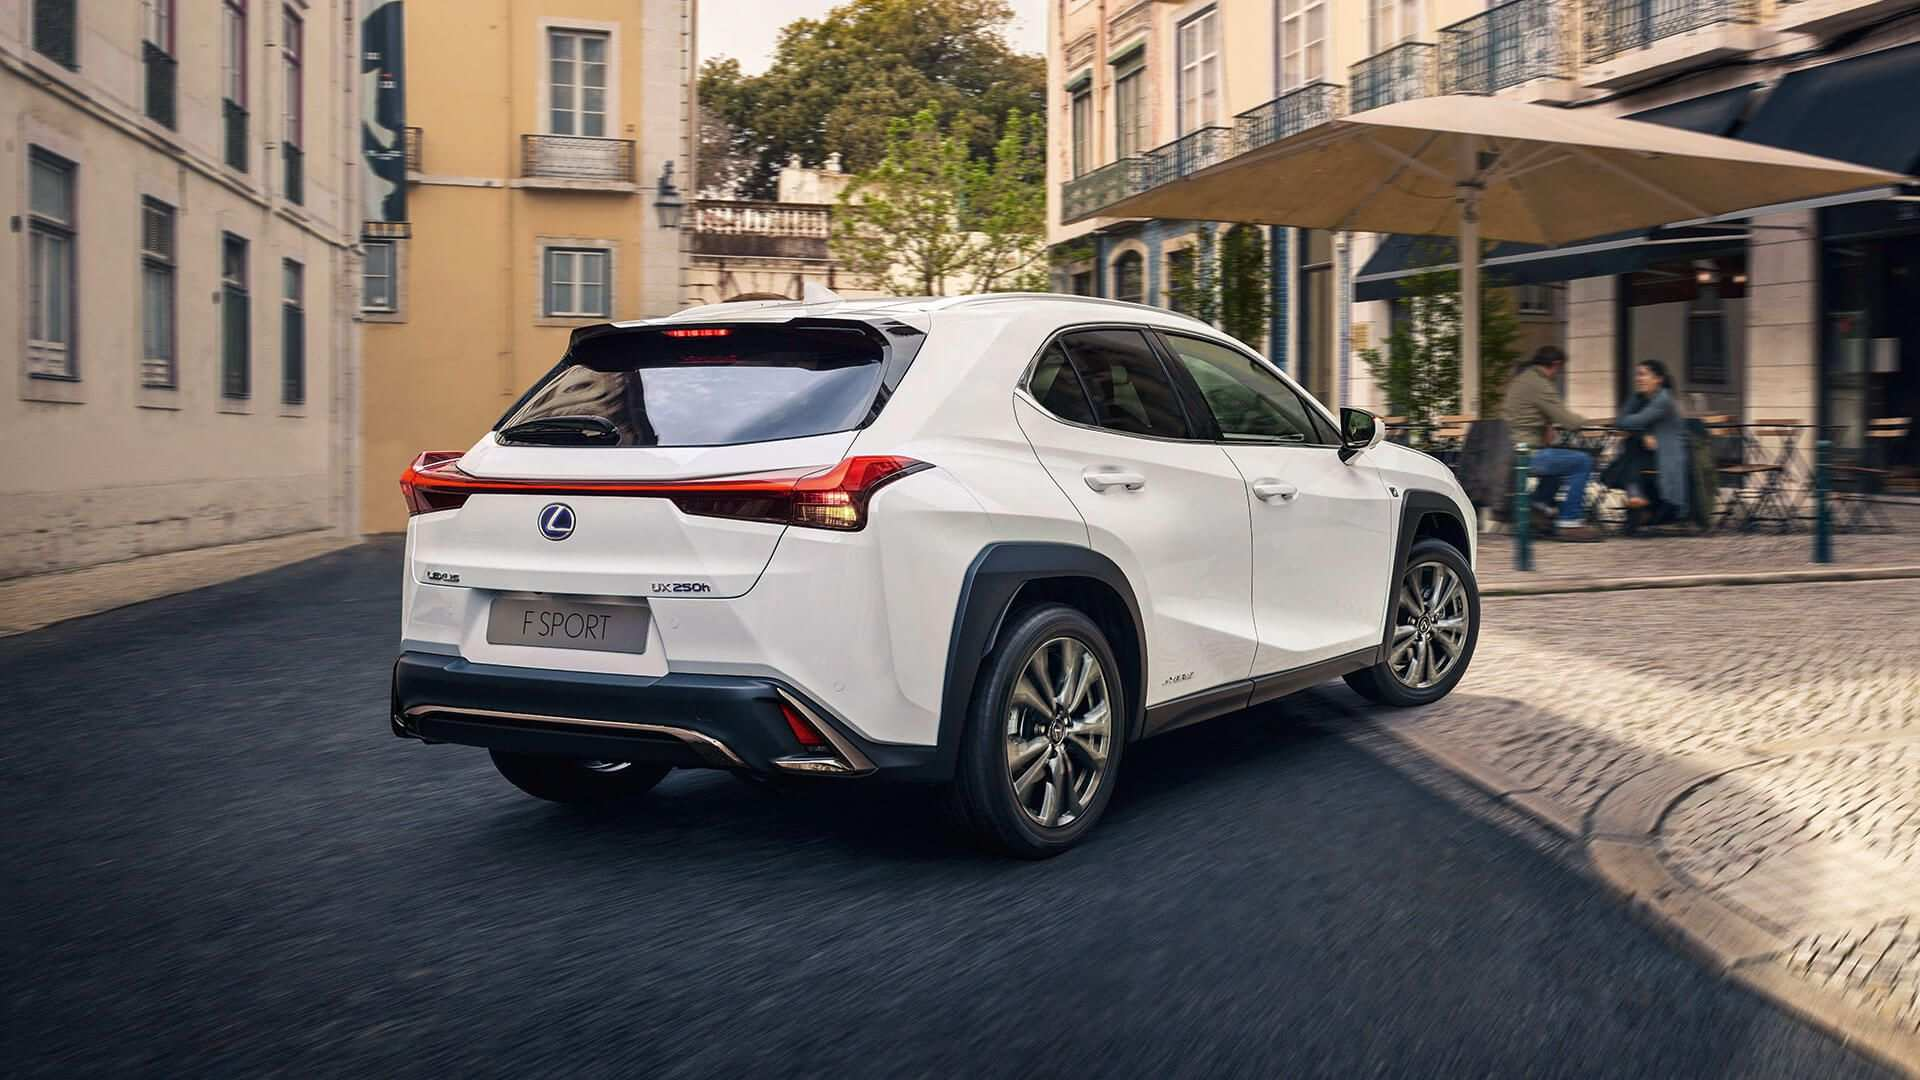 12 All New 2020 Lexus Ux 250H Engine with 2020 Lexus Ux 250H